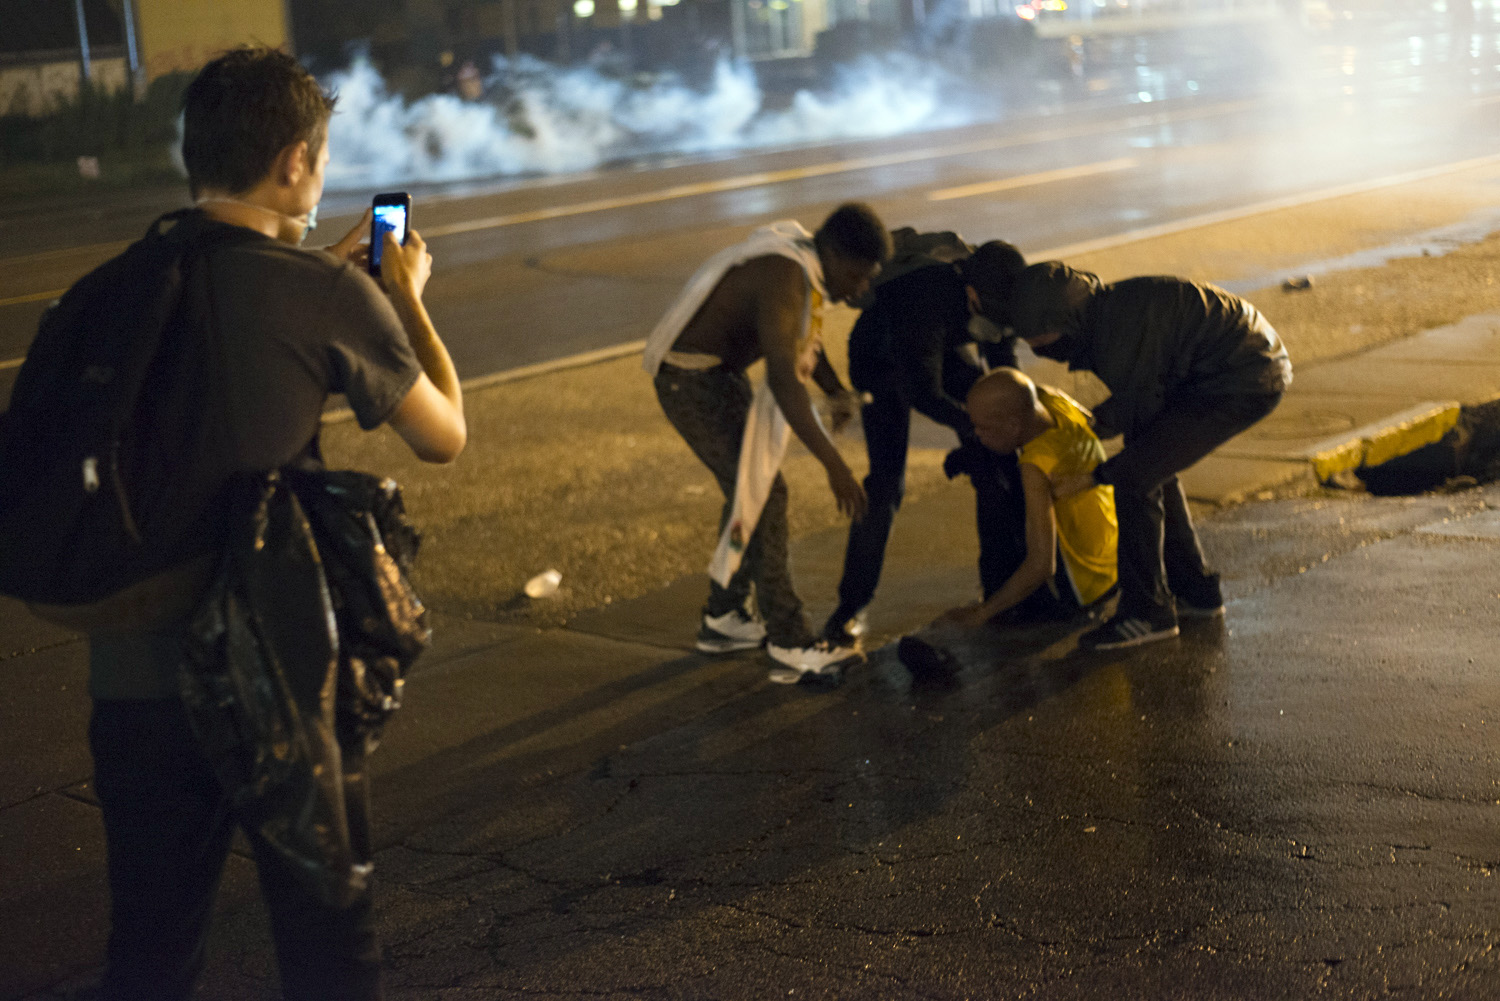 Protestors help a man who was injured by tear gas thrown by police after refusing to disperse after the midnight curfew in Ferguson, Mo. on Aug. 17, 2014.